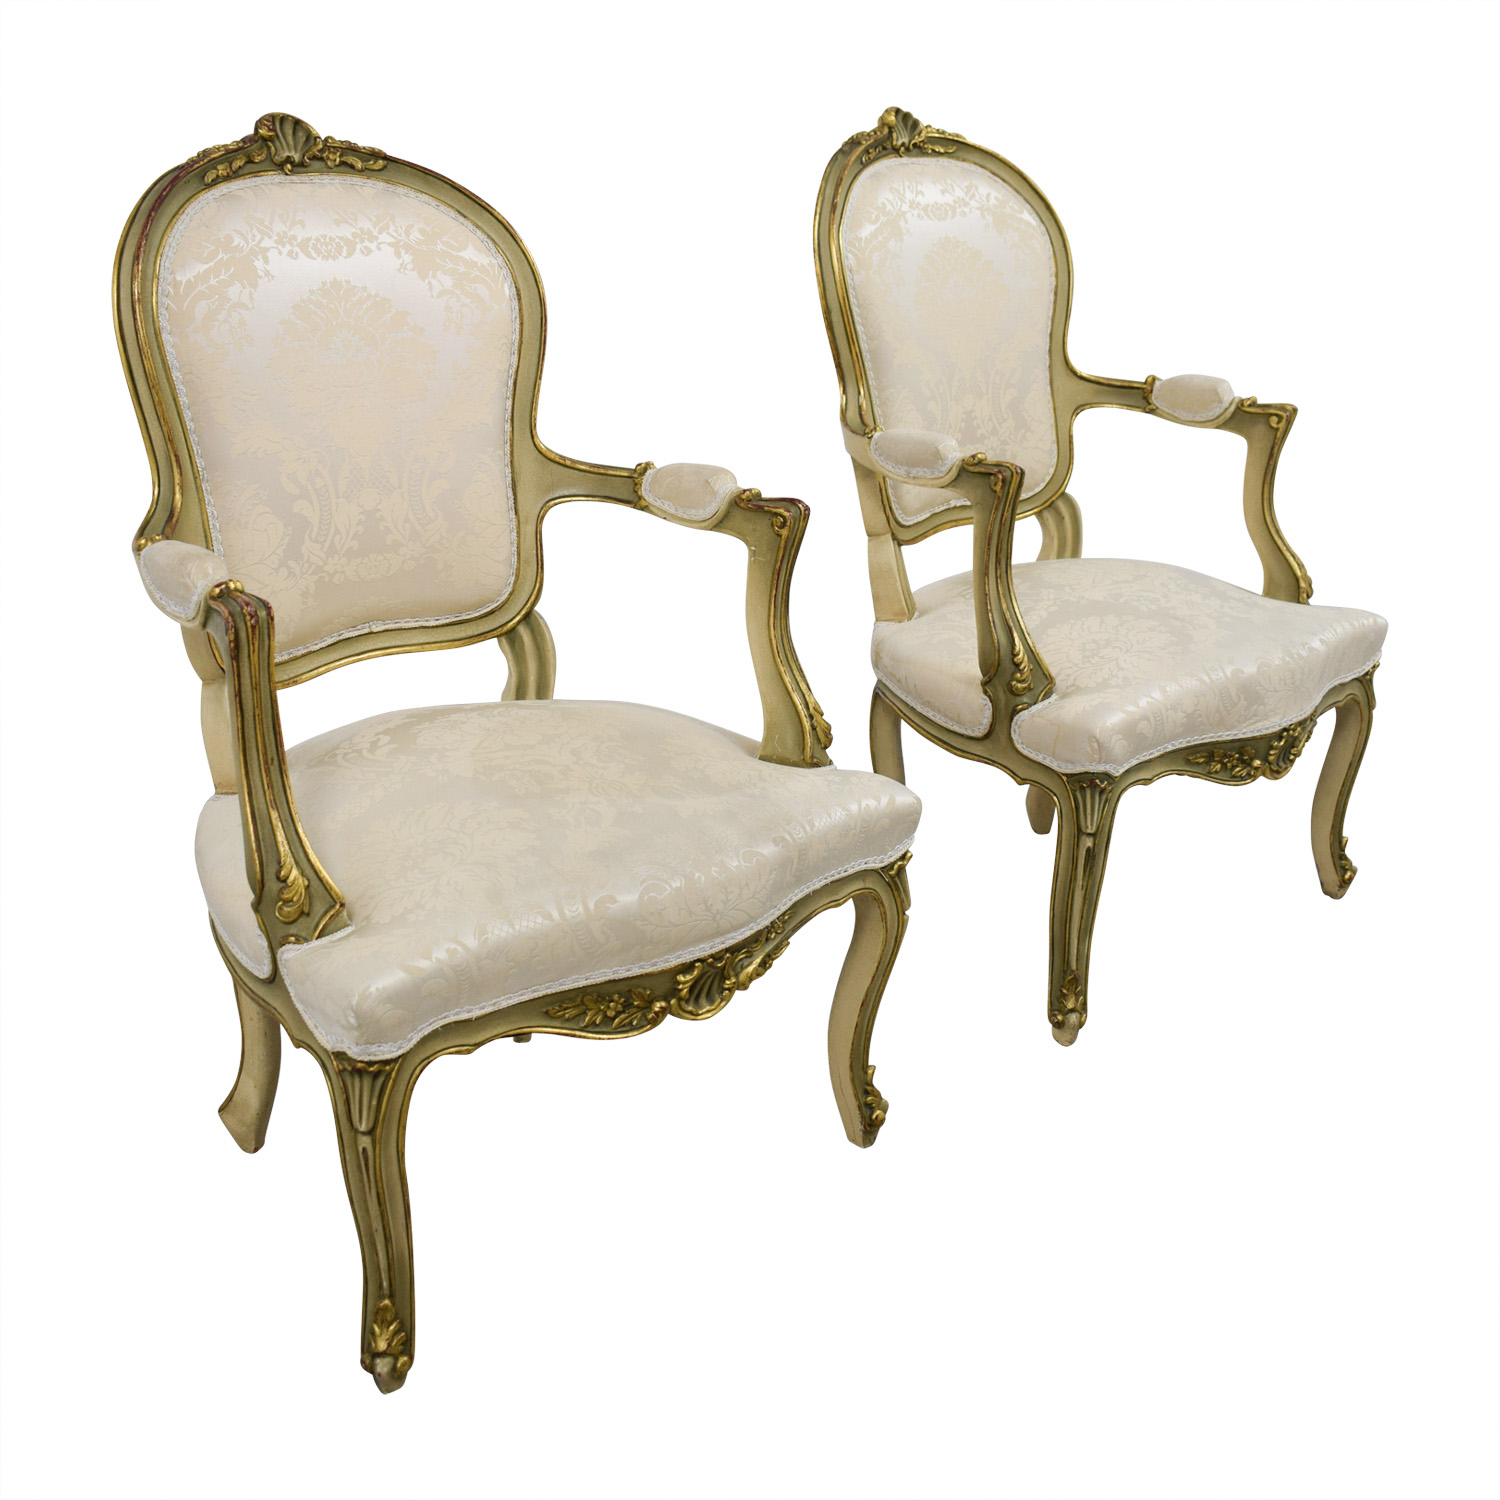 Antique White Jacquard Upholstered Gold Arm Chairs / Accent Chairs